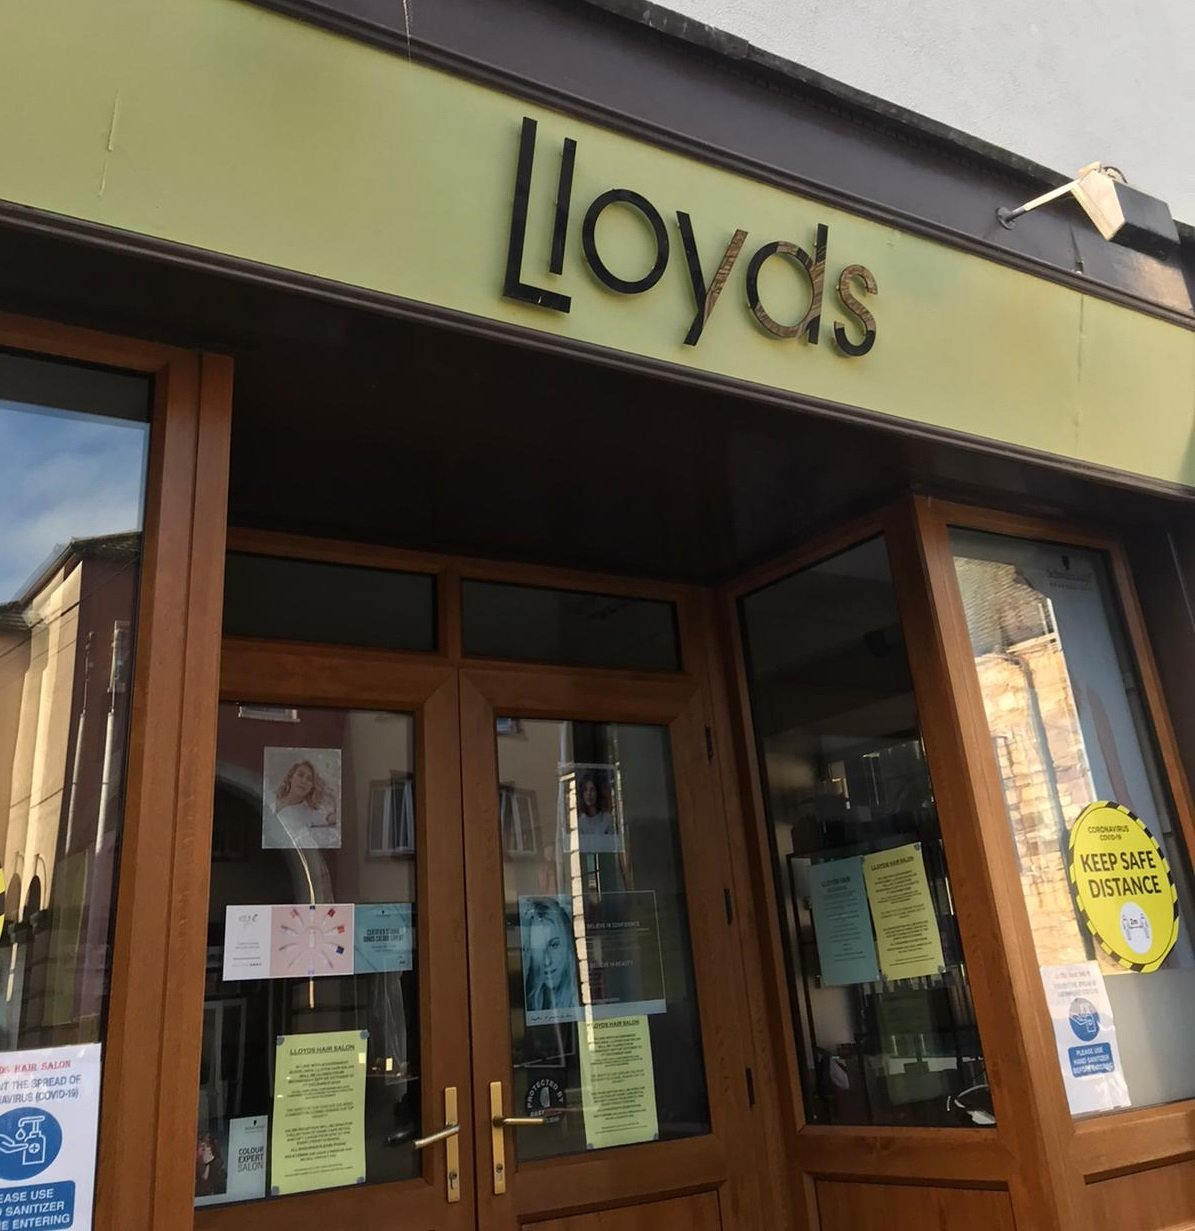 5 Ways to Support Lloyds